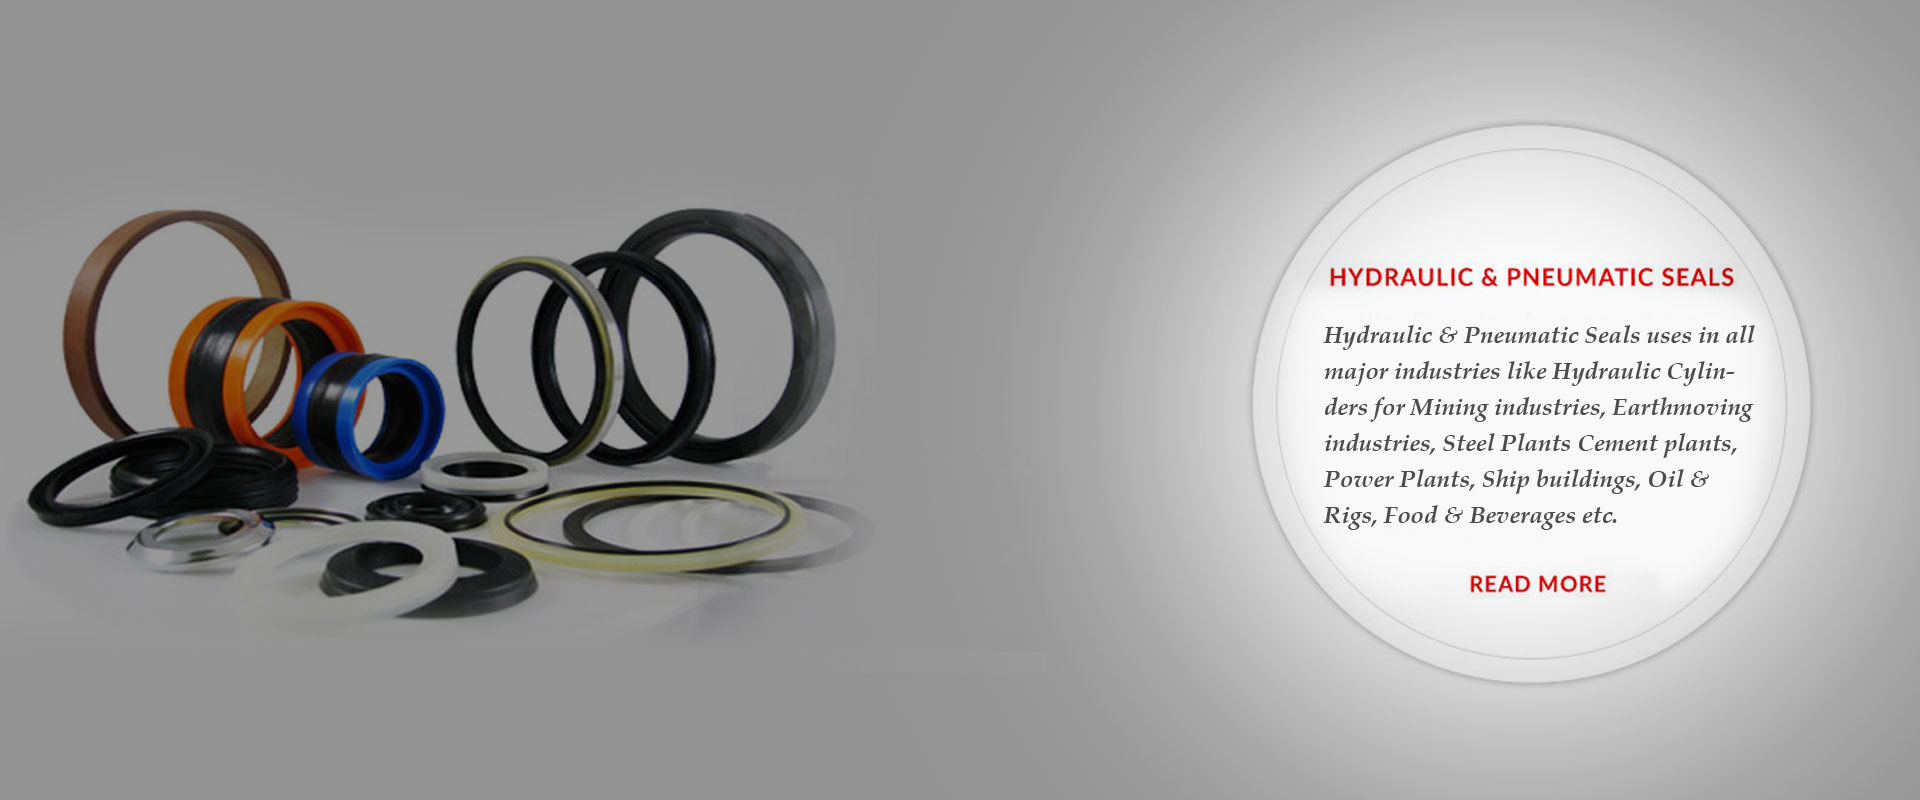 Hydraulic Seal & Pneumatic Seals - We offer extensive range of Customized Hydraulic & Pneumatic Machined Seals from 10mm to 1500mm Dia within shortest possible time with imported Polyurethane, Rubber, Teflon & Nylon material.